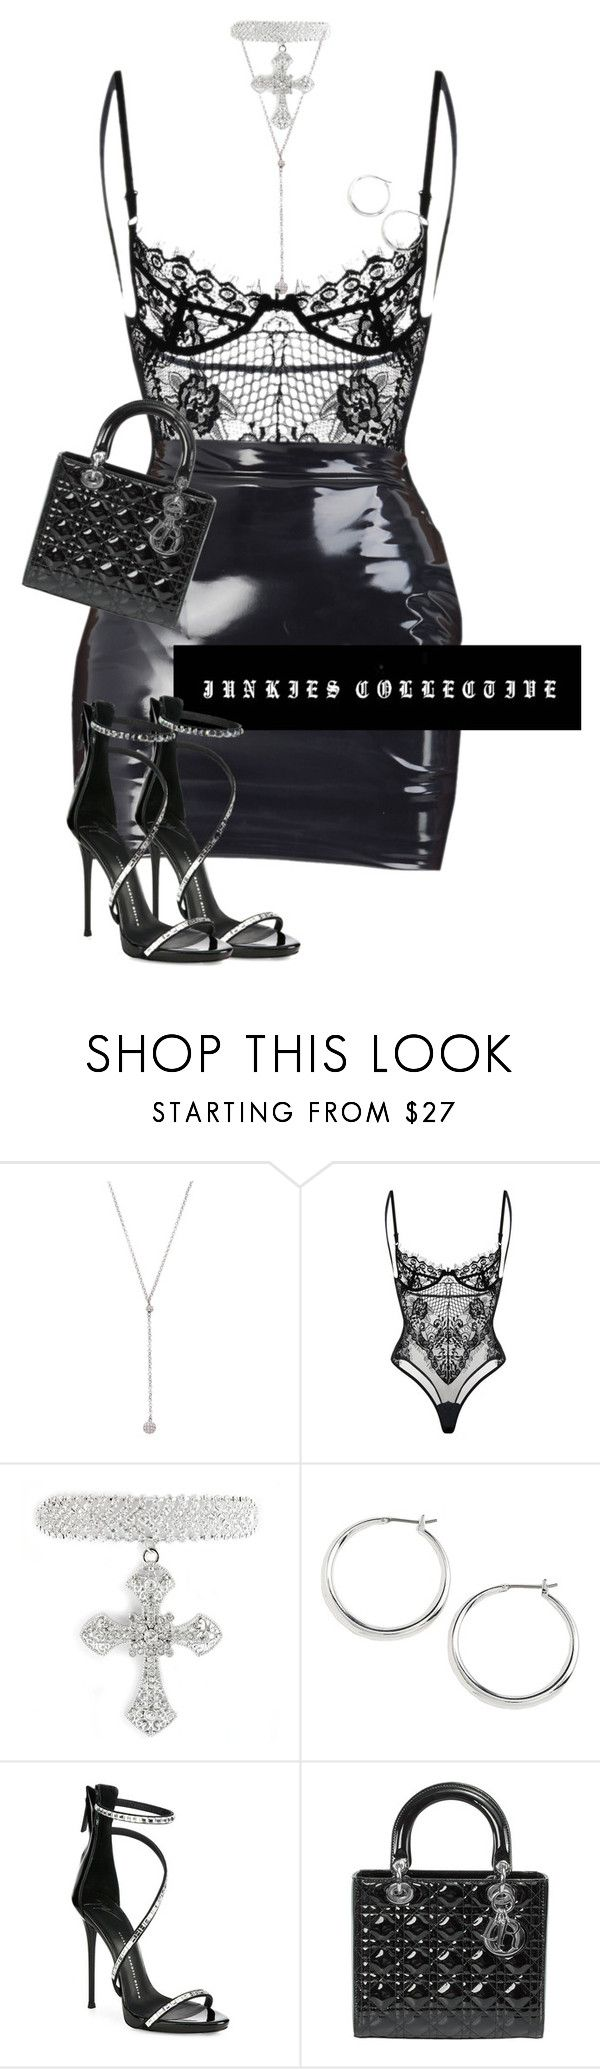 """""""The 807"""" by junkiescollective ❤ liked on Polyvore featuring Bavna, Lauren Ralph Lauren, Giuseppe Zanotti and Christian Dior"""